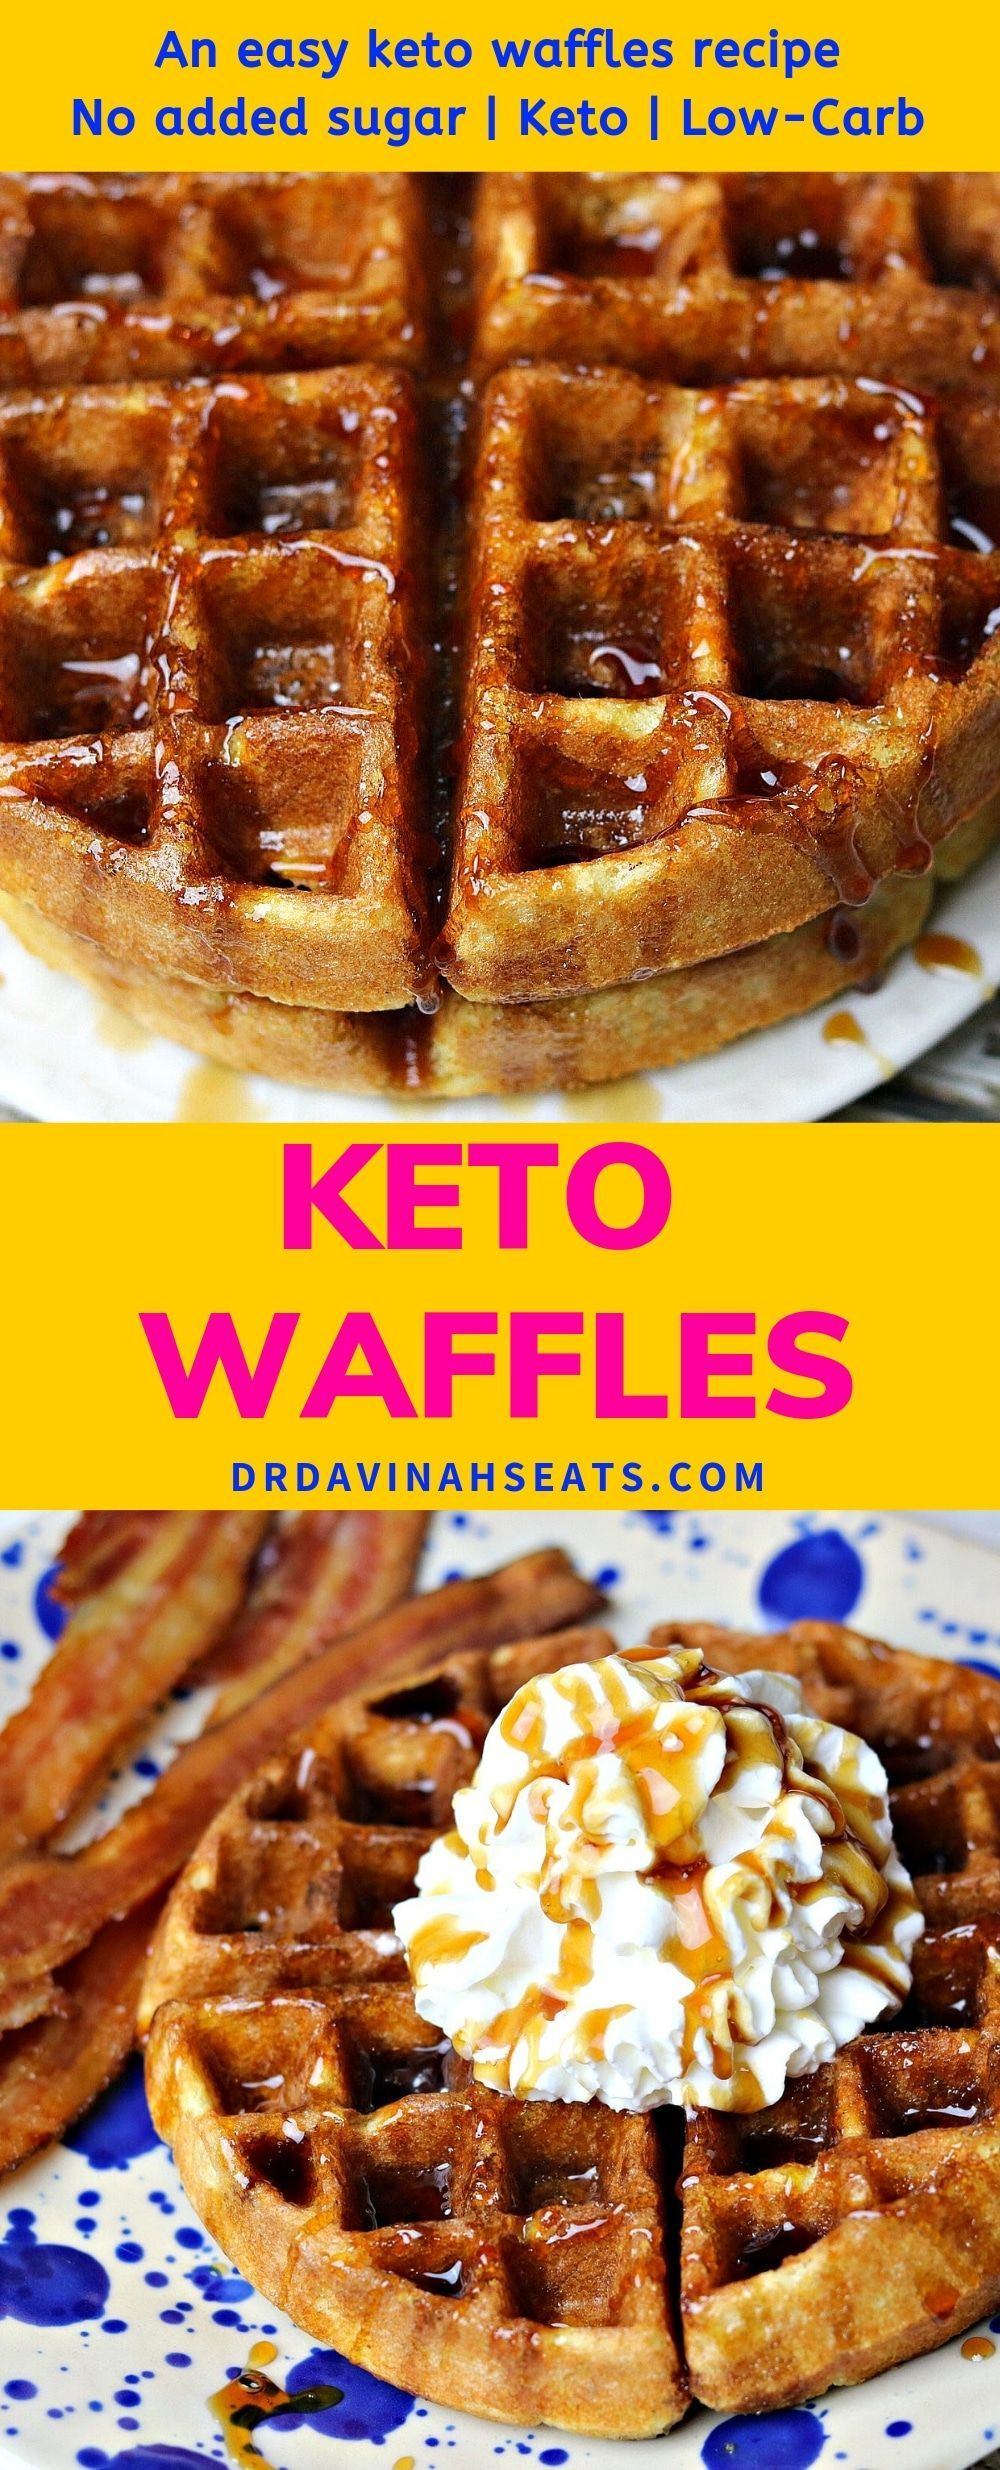 Want an easy keto waffles recipe that tastes fluffy on the inside and slightly crisp on the outside? These low carb almond flour waffles are DELICIOUS! Plus, they are prepared in less than 20 minutes. Perfect for brunch & kid-approved.